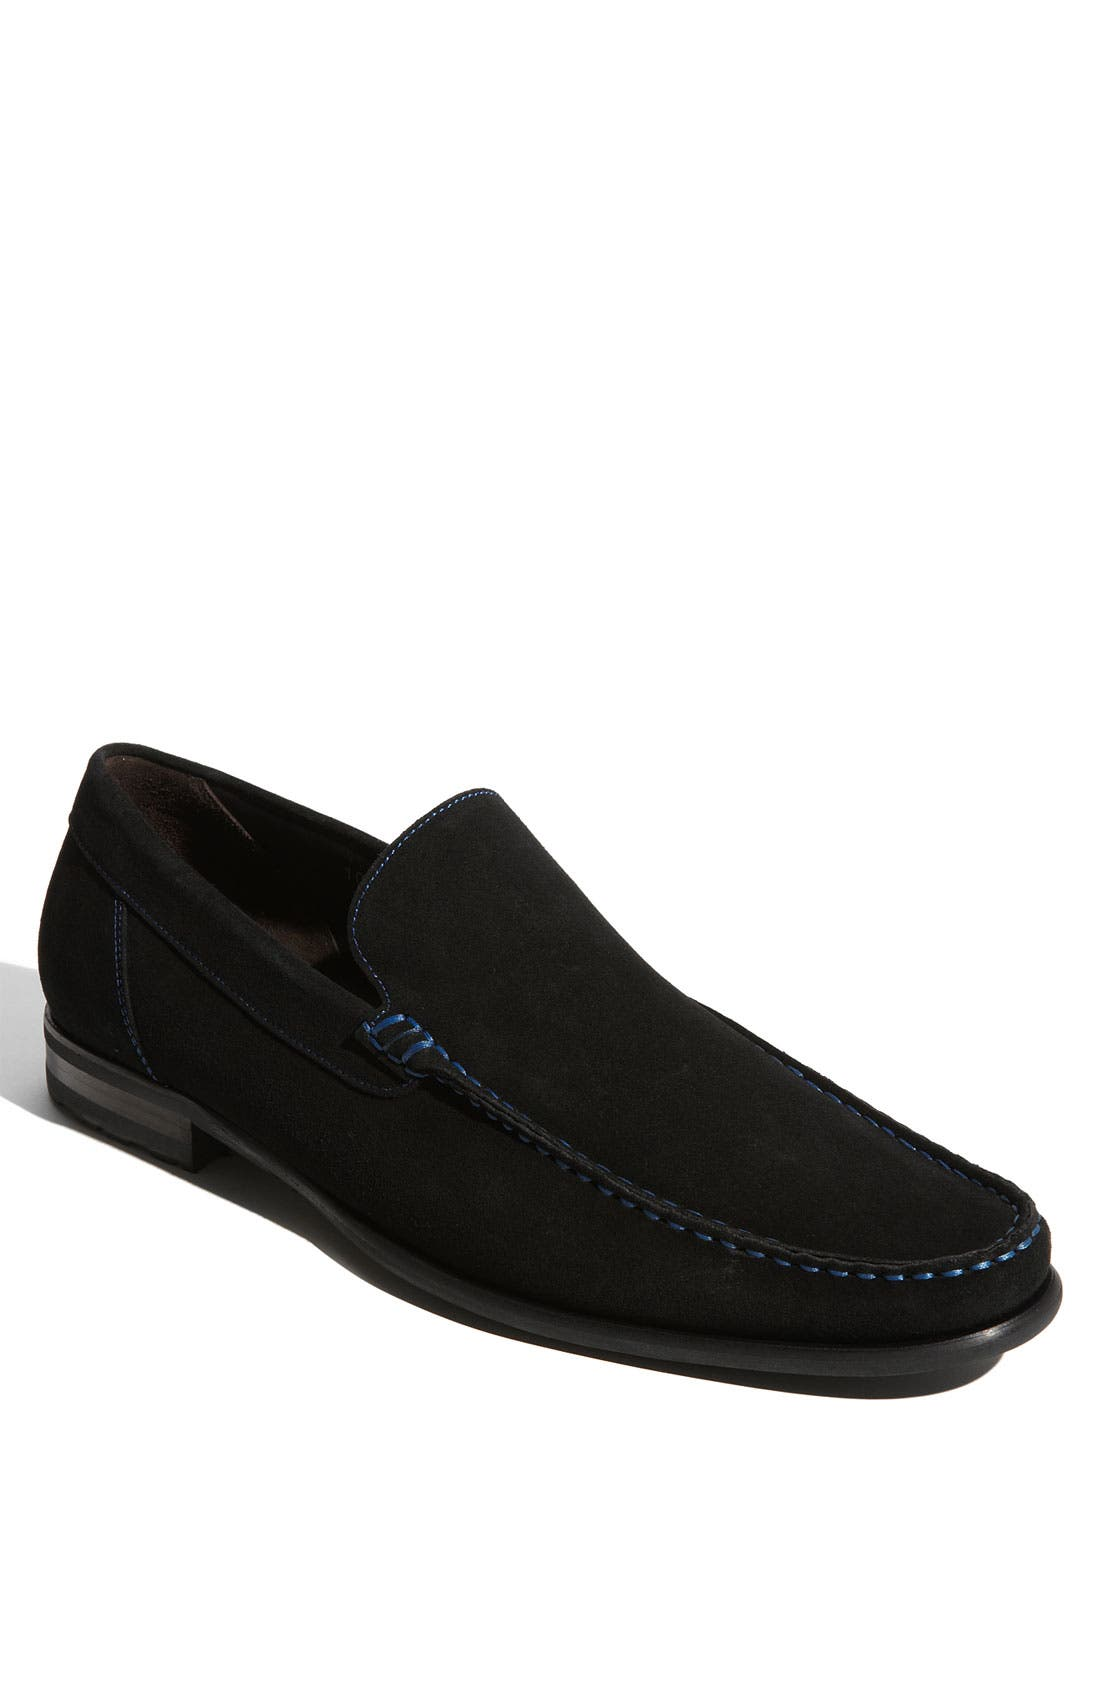 Main Image - To Boot New York 'Colby' Loafer